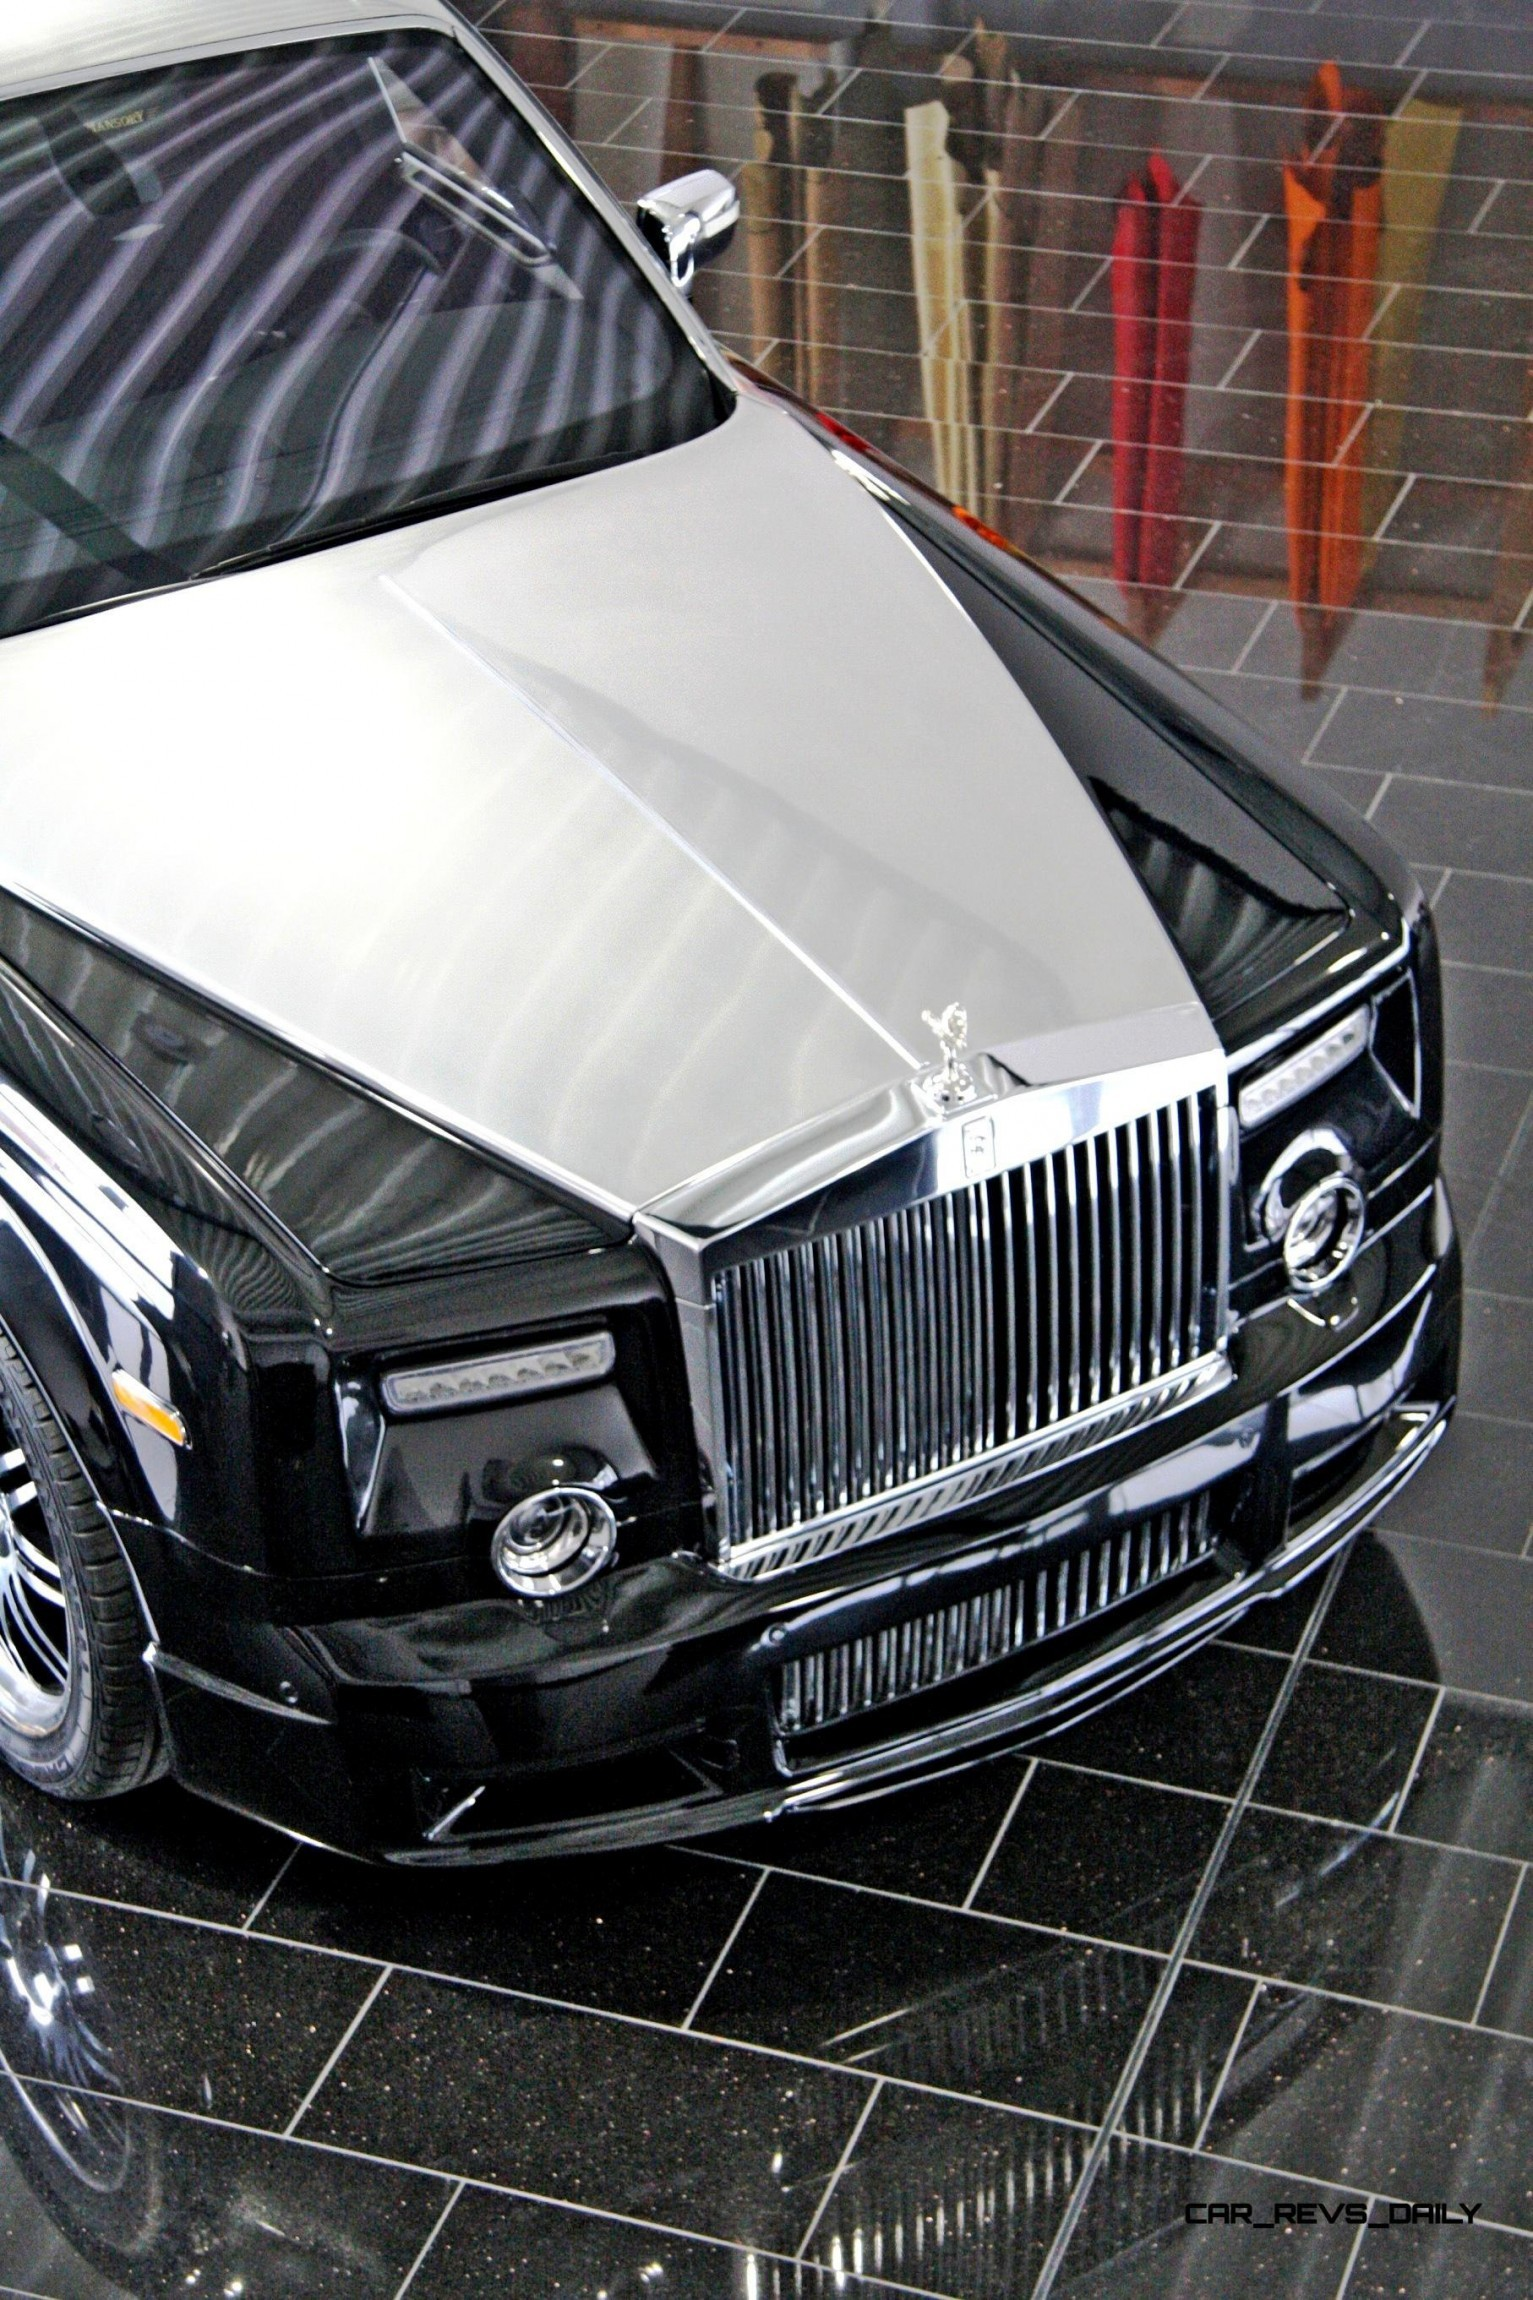 Rolls Royce Limo >> MANSORY Rolls-Royce Phantom Limo and Phantom Drophead Coupe Are 7.5L, V12TT Purebreds